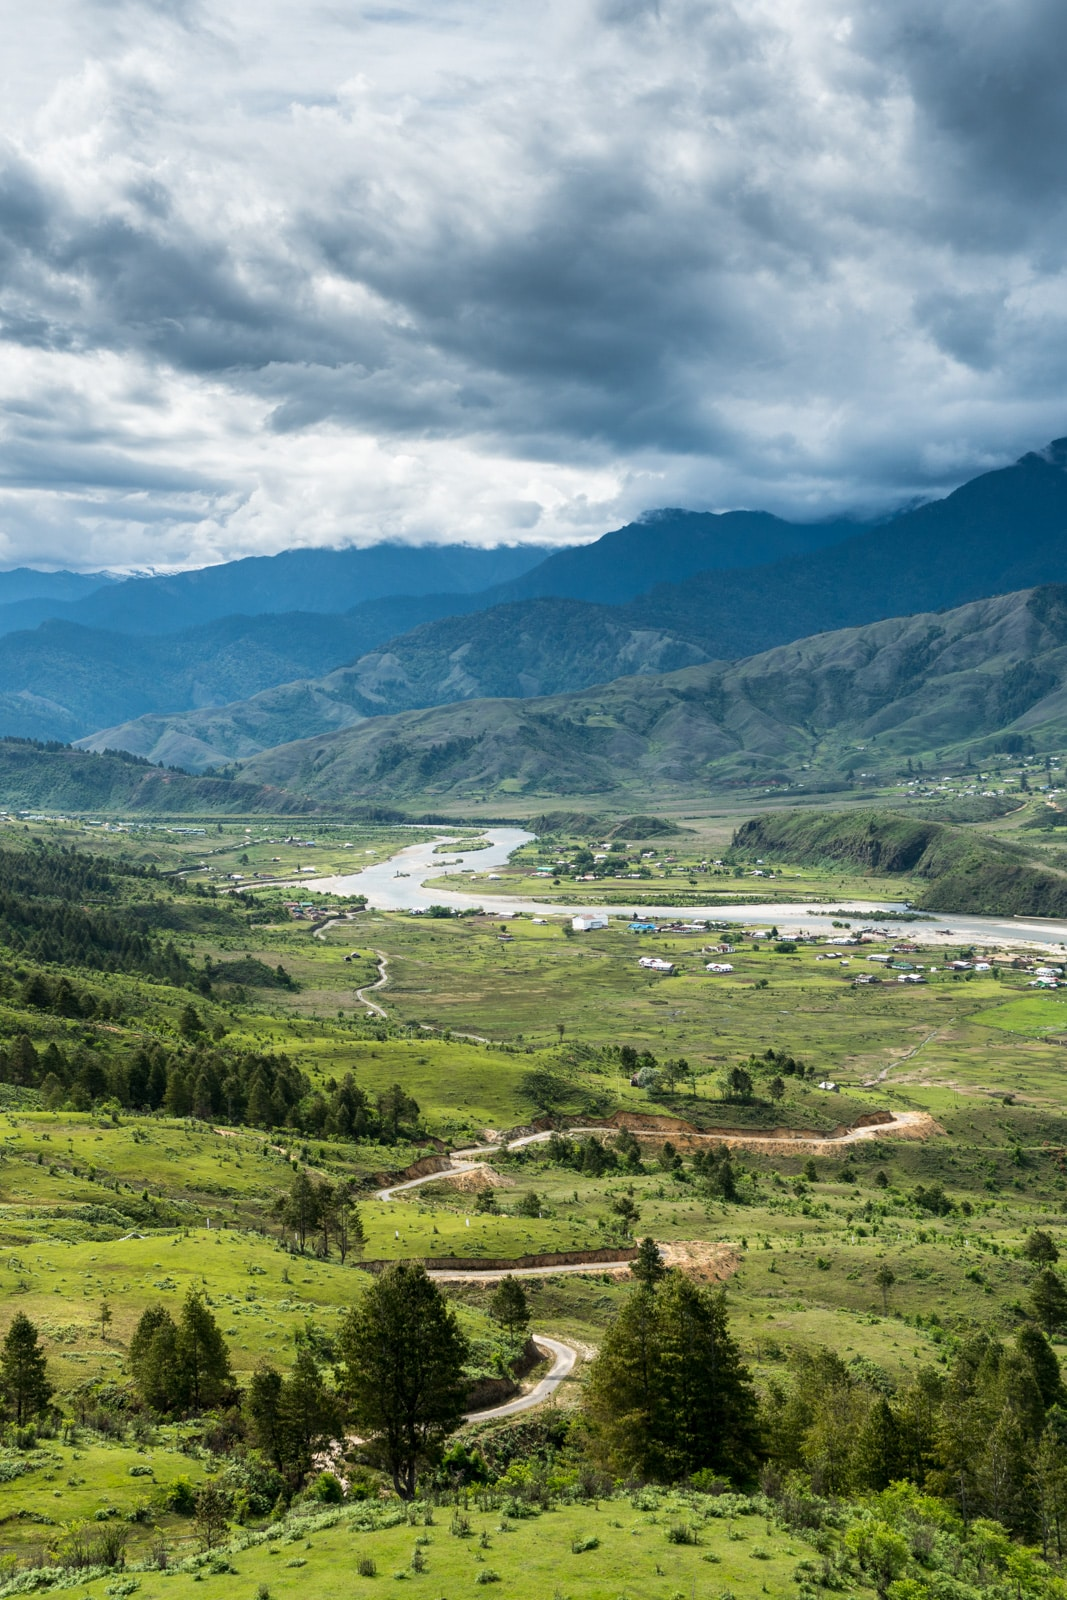 Mechuka village in Arunachal Pradesh state, Northeast India, is one of the most beautiful off the beaten track destinations we've visited in India. Click through to learn more about the mountainous paradise and other off the beaten track destinations in India.